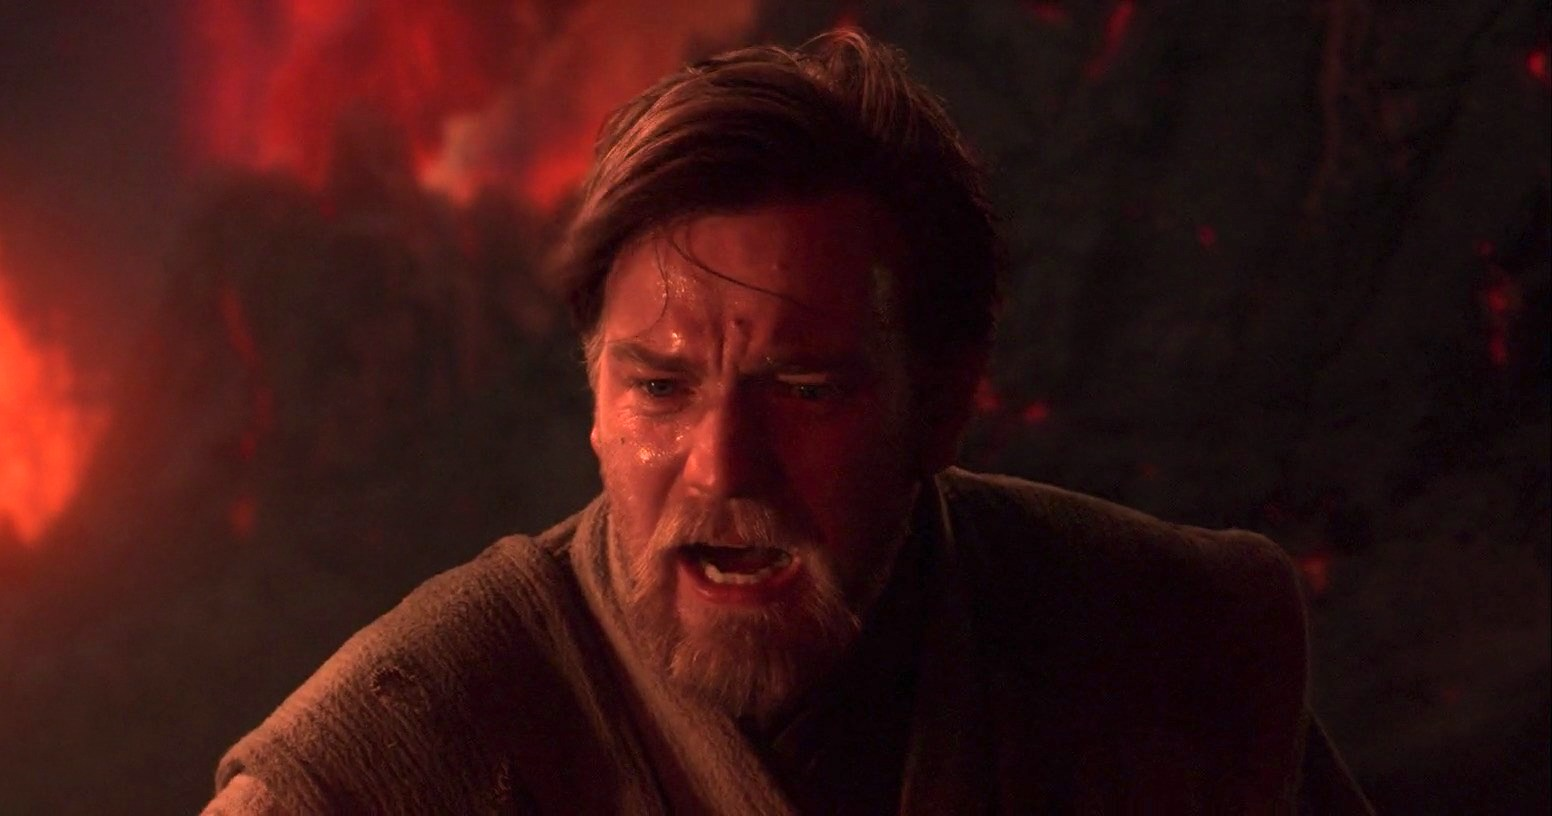 Obi-Wan Kenobi series reportedly on hold as concept gets retooled